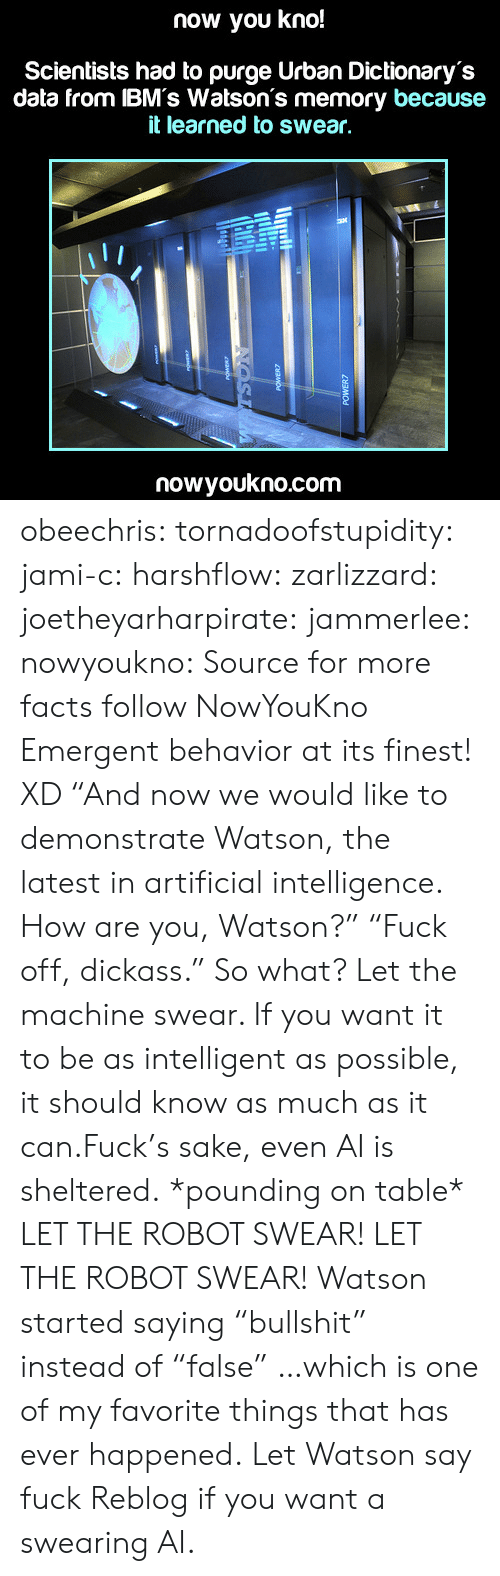 """Jami: now you kno!  Scientists had to purge Urban Dictionary's  data from IBM's Watson's memory because  it learned to swear,  nowyoukno.com obeechris:  tornadoofstupidity:  jami-c:  harshflow:  zarlizzard:  joetheyarharpirate:  jammerlee:  nowyoukno:  Source for more facts follow NowYouKno  Emergent behavior at its finest! XD  """"And now we would like to demonstrate Watson, the latest in artificial intelligence. How are you, Watson?"""" """"Fuck off, dickass.""""  So what? Let the machine swear. If you want it to be as intelligent as possible, it should know as much as it can.Fuck's sake, even AI is sheltered.  *pounding on table* LET THE ROBOT SWEAR! LET THE ROBOT SWEAR!  Watson started saying""""bullshit"""" instead of""""false"""" …which is one of my favorite things that has ever happened.   Let Watson say fuck  Reblog if you want a swearing AI."""